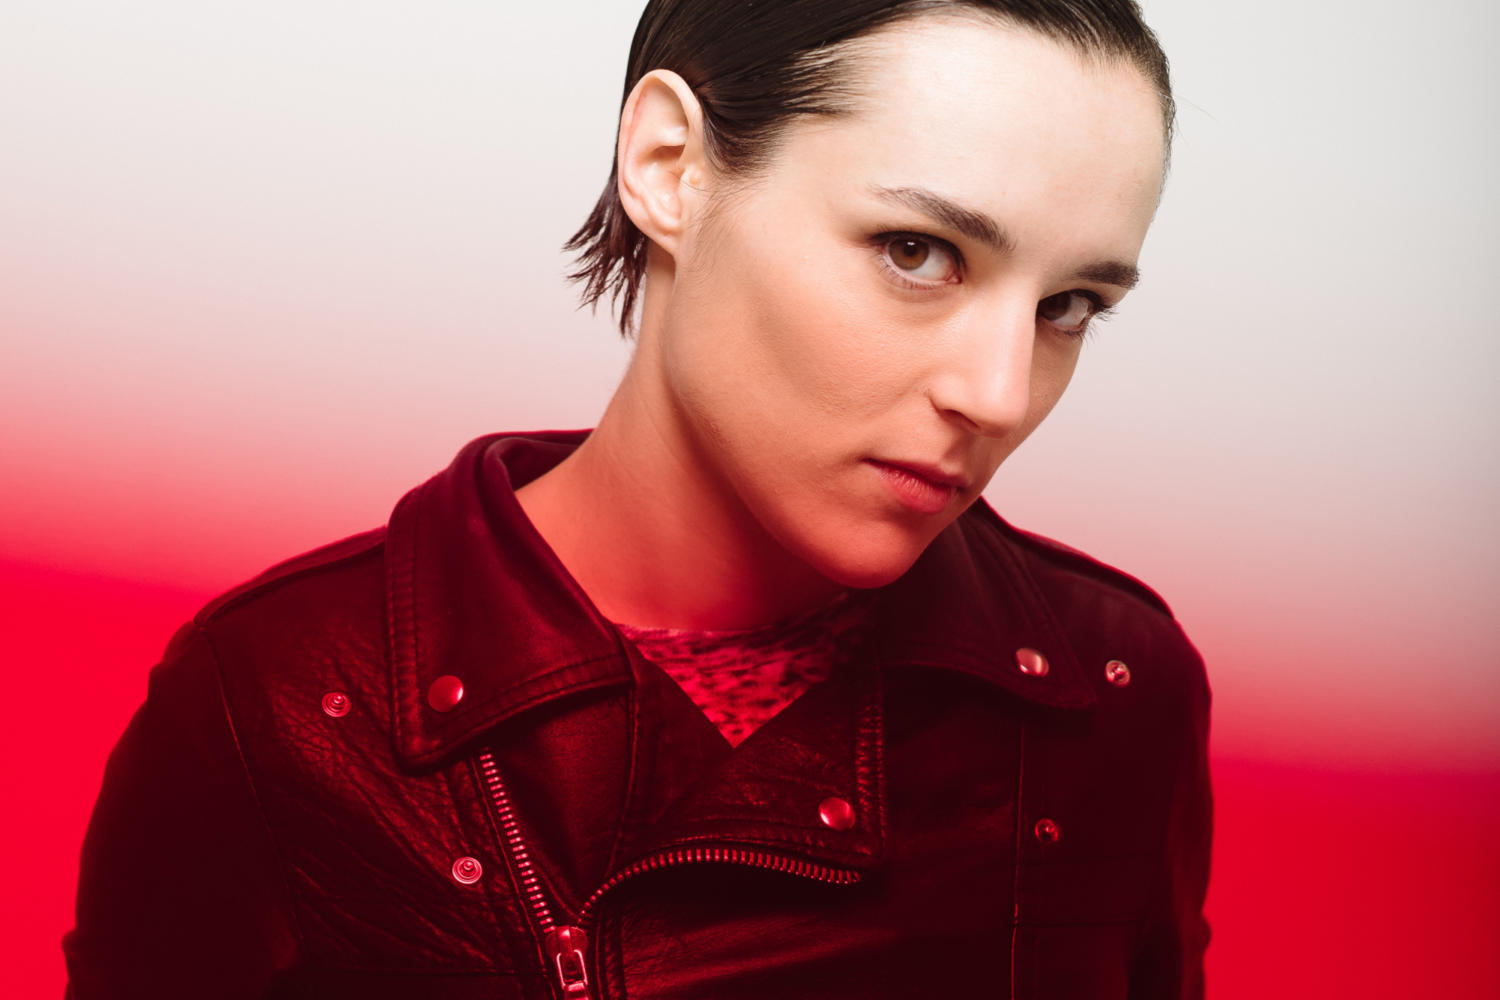 Savages' Jehnny Beth shares new track 'I'm The Man'